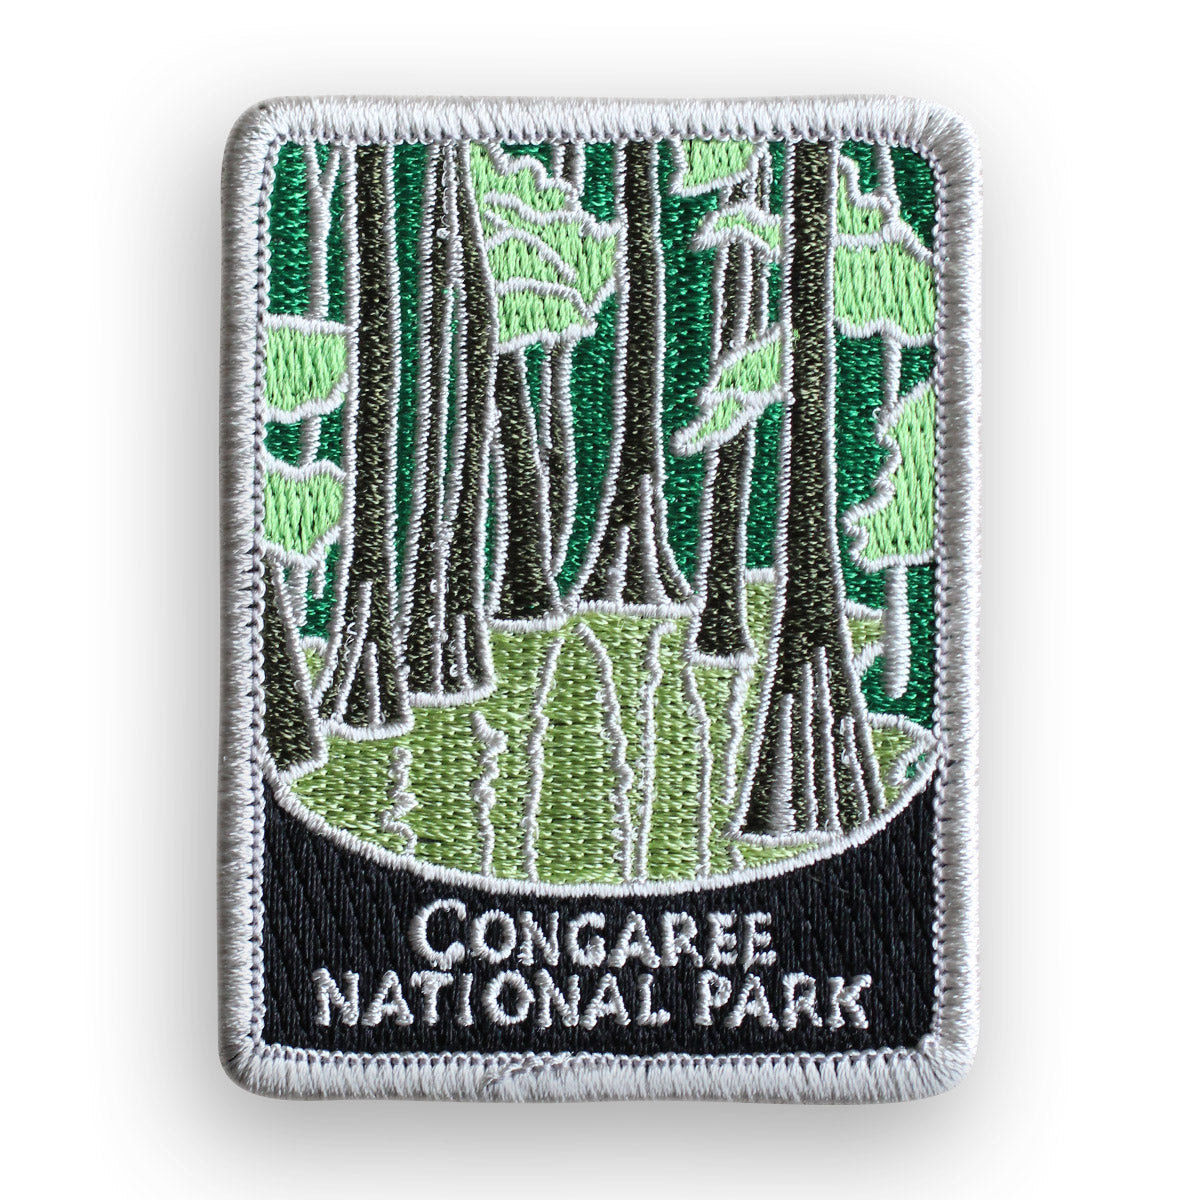 Congaree National Park Traveler Patch